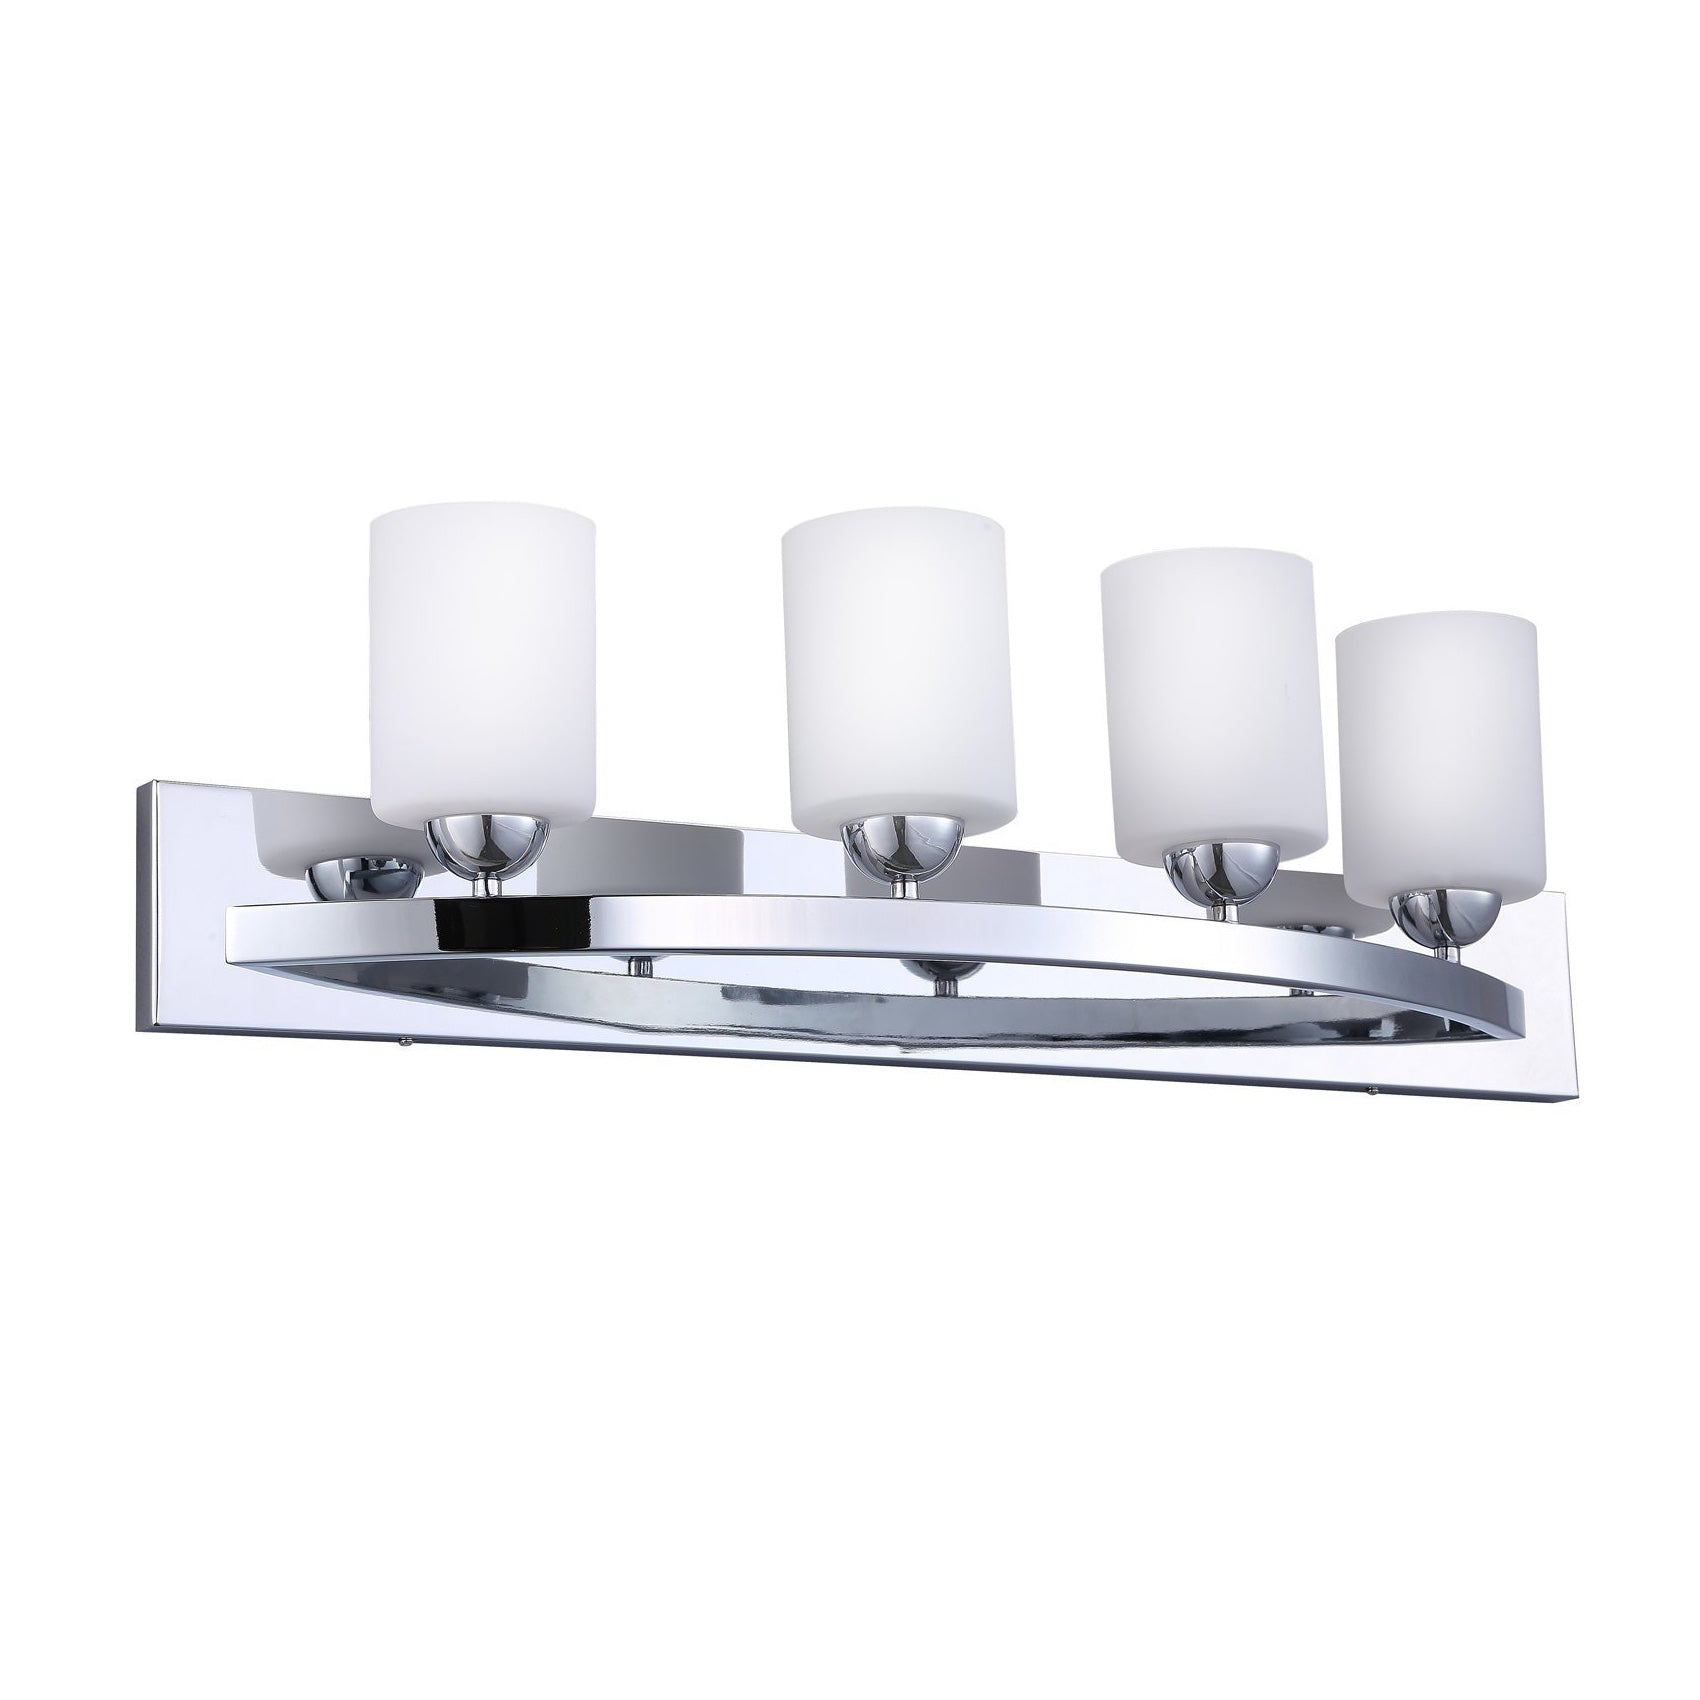 Cloudybay Bath Vanity Light 4-Bulb With Opal Glass Shade Chrome__title